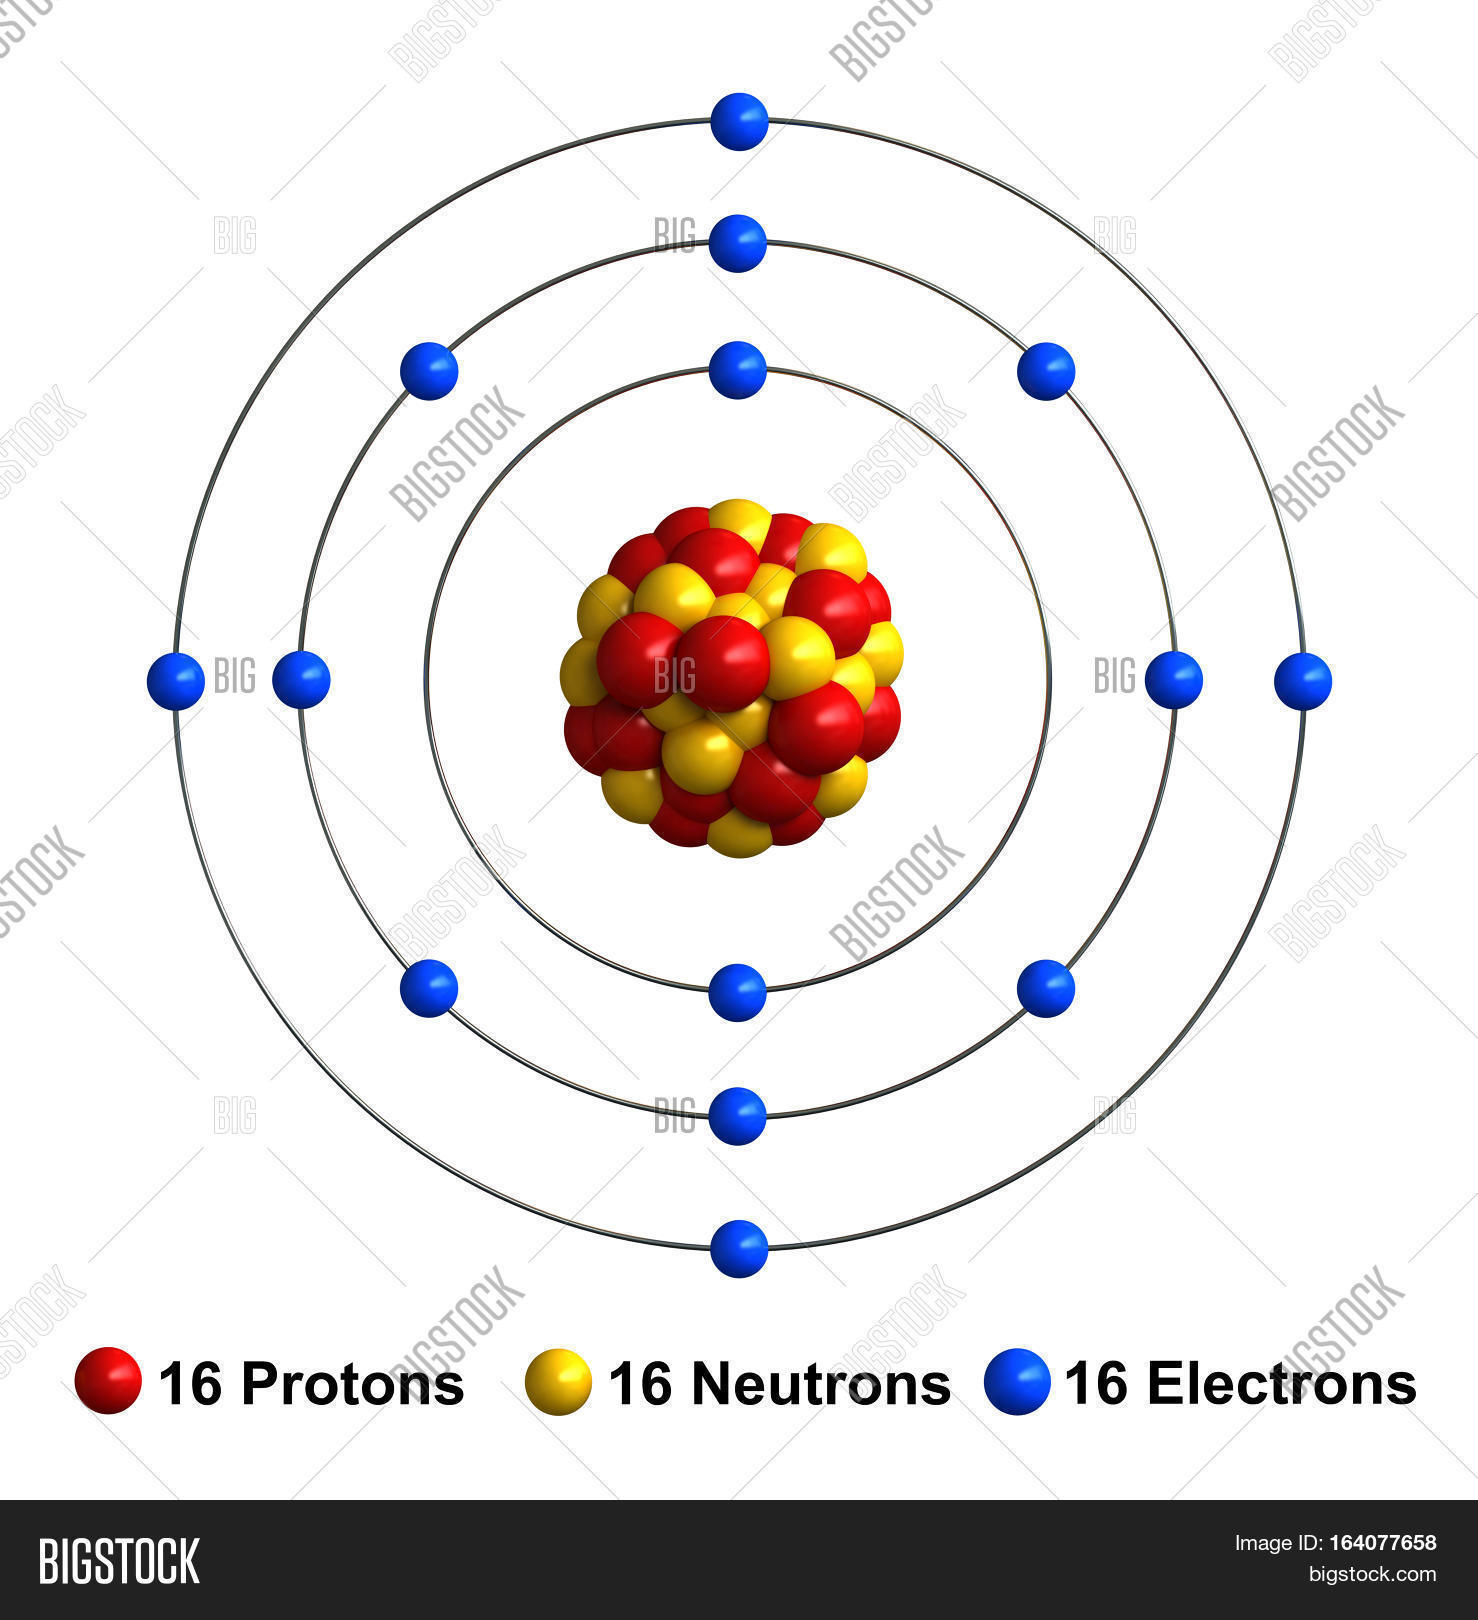 3d render atom image photo free trial bigstock 3d render of atom structure of sulfur isolated over white background protons are represented as red ccuart Choice Image